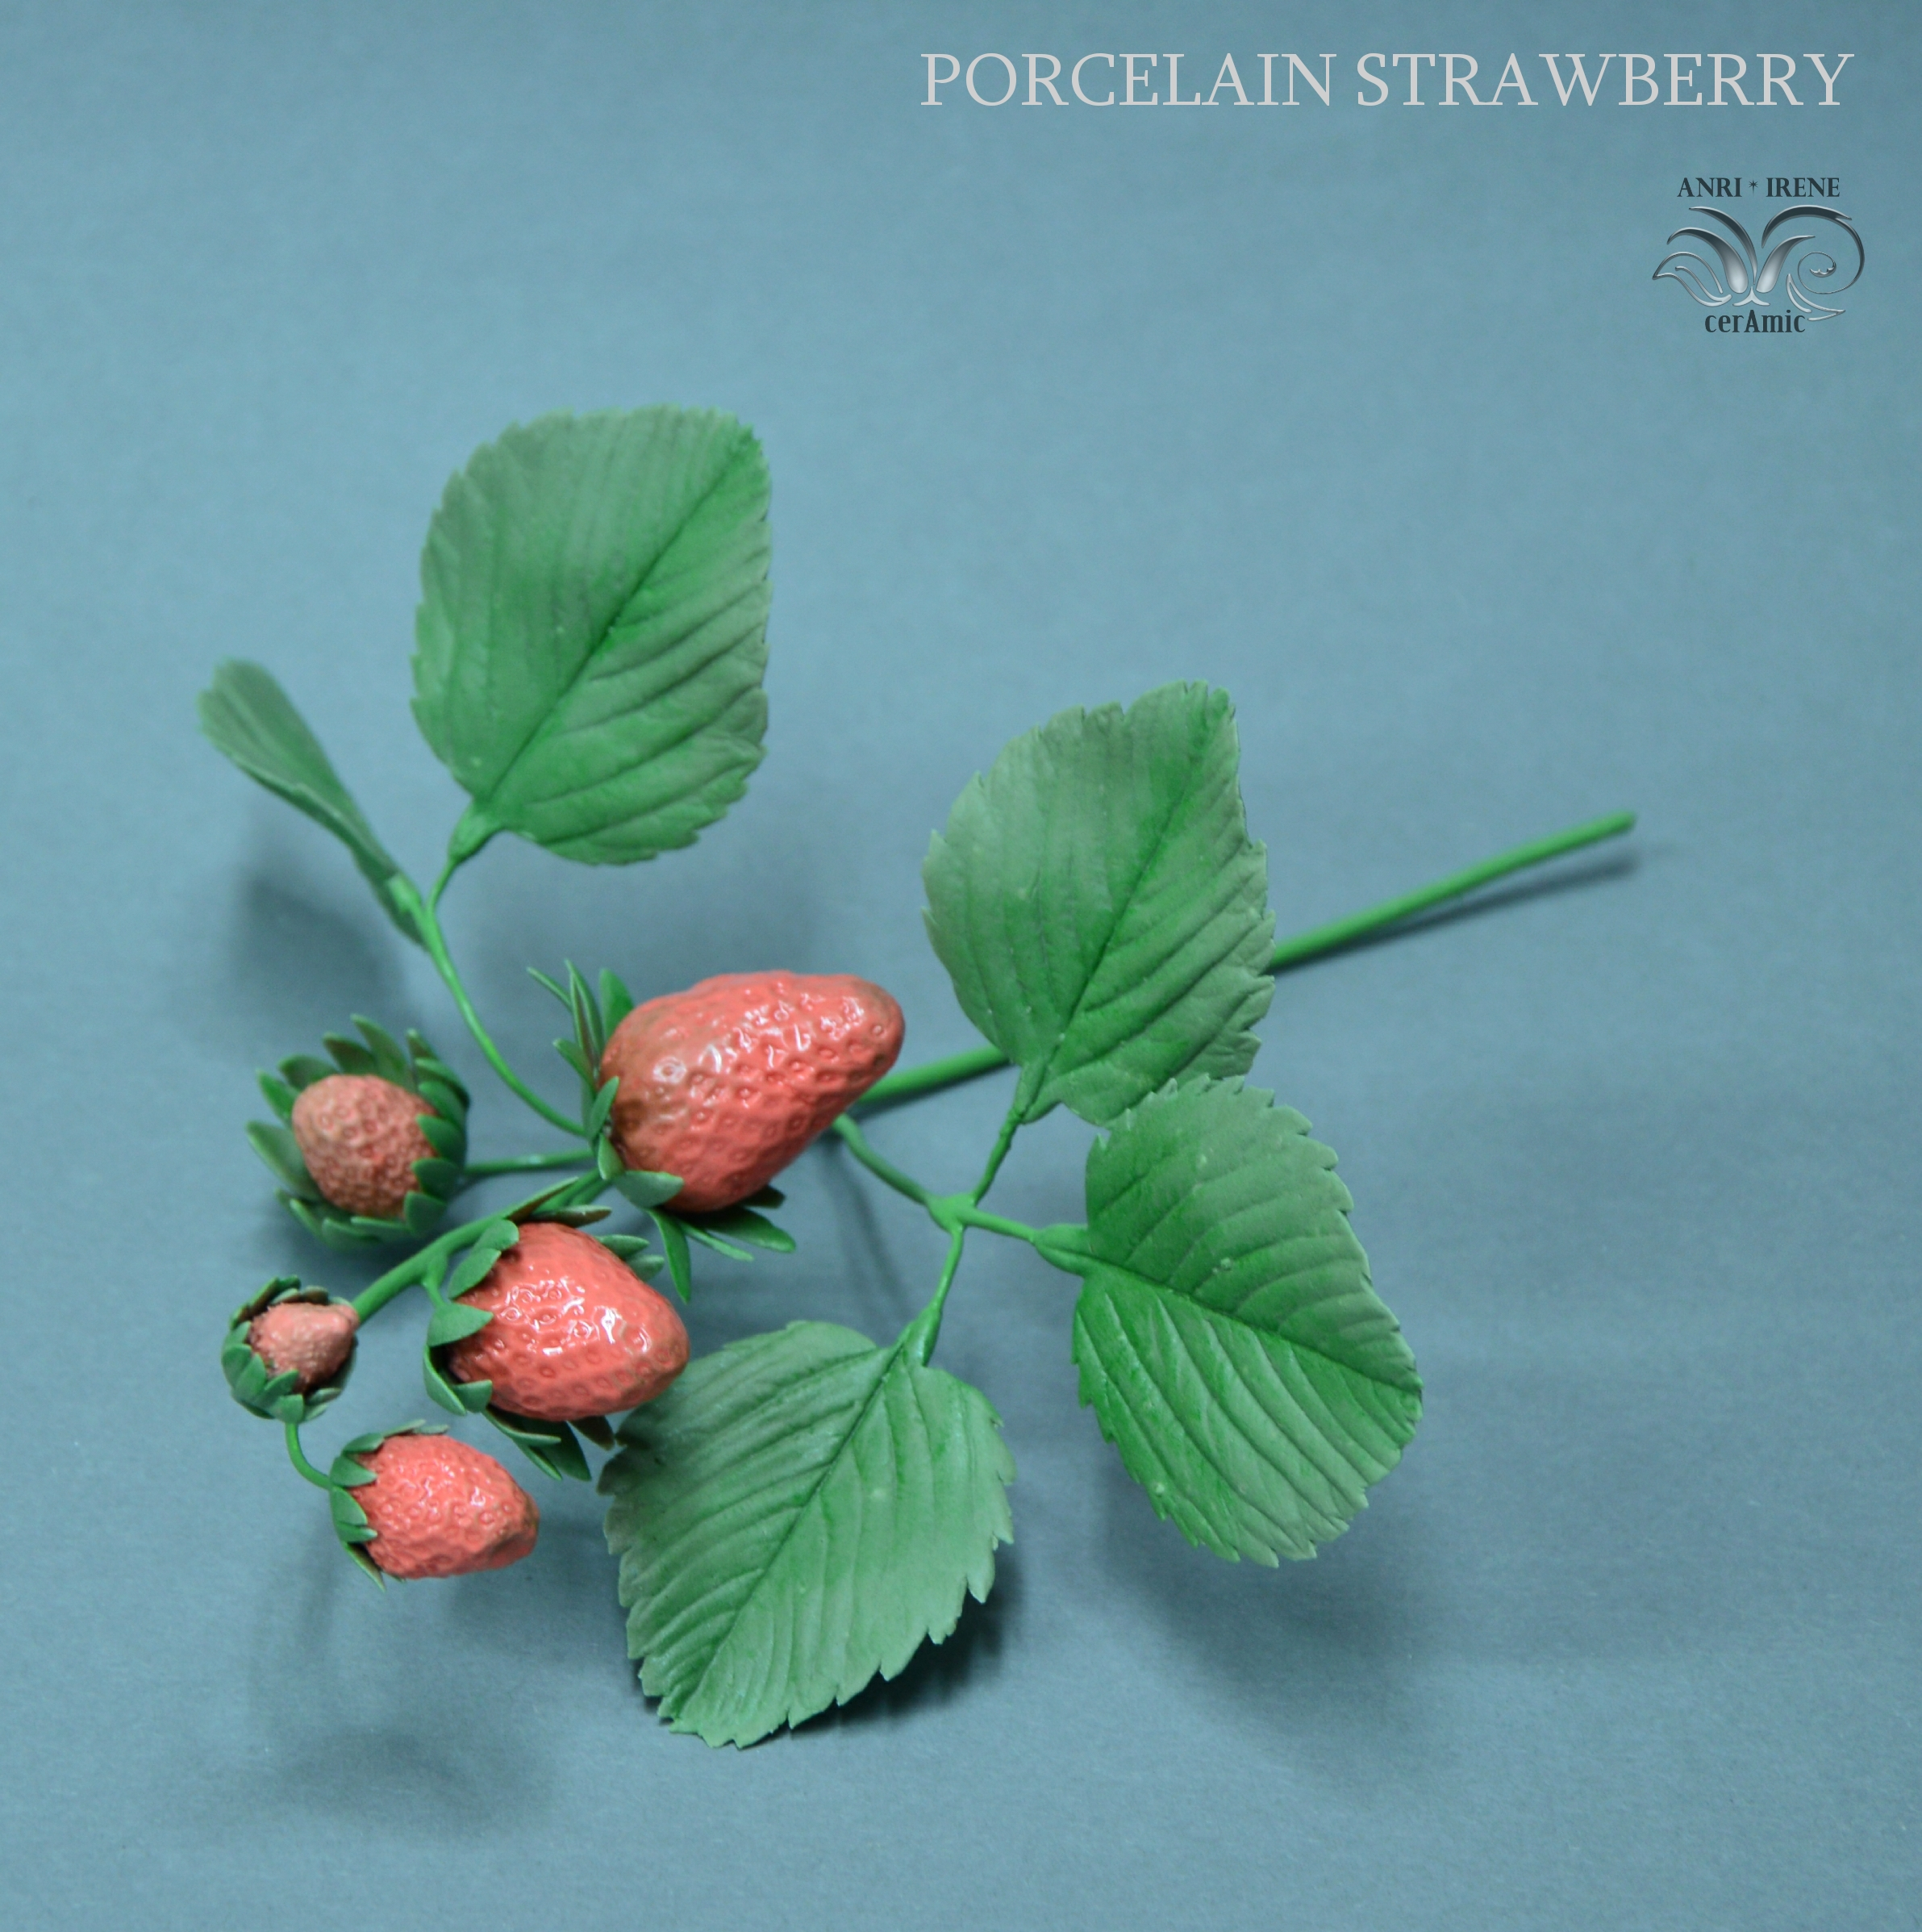 Porcelain strawberry